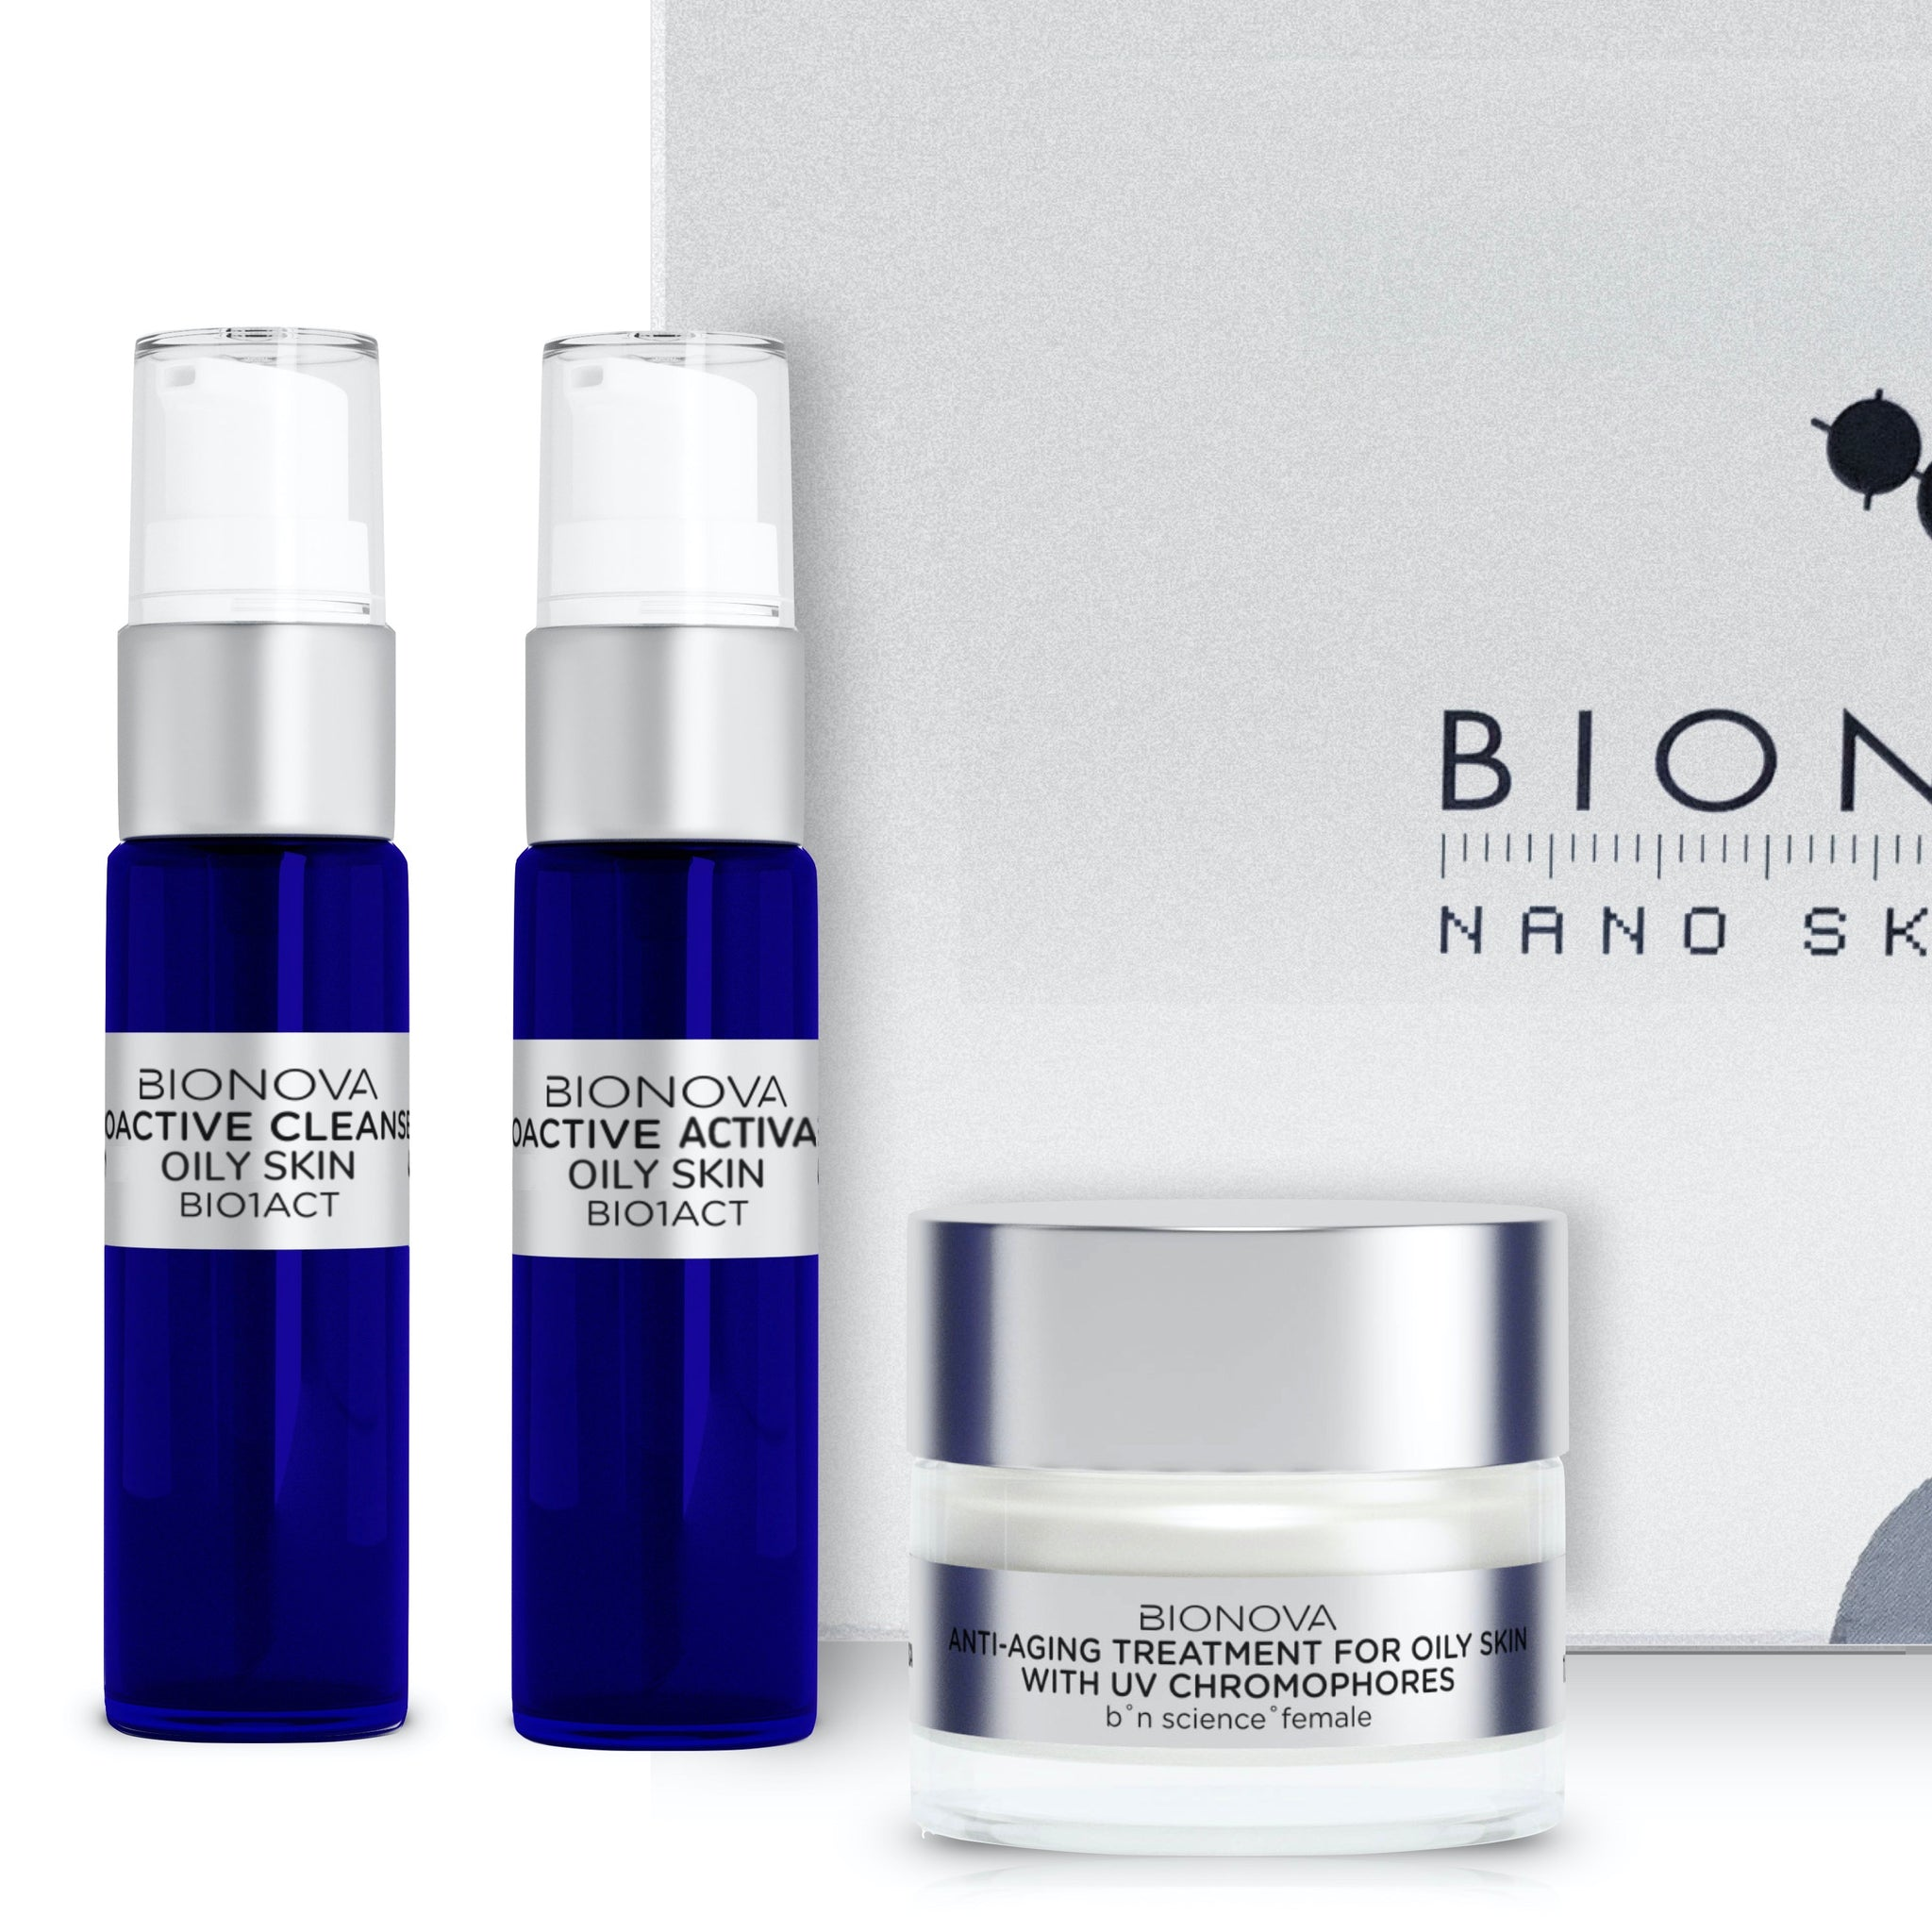 Anti-Aging Discovery Collection for Oily Skin with UV Chromophores | b°n Science | Female